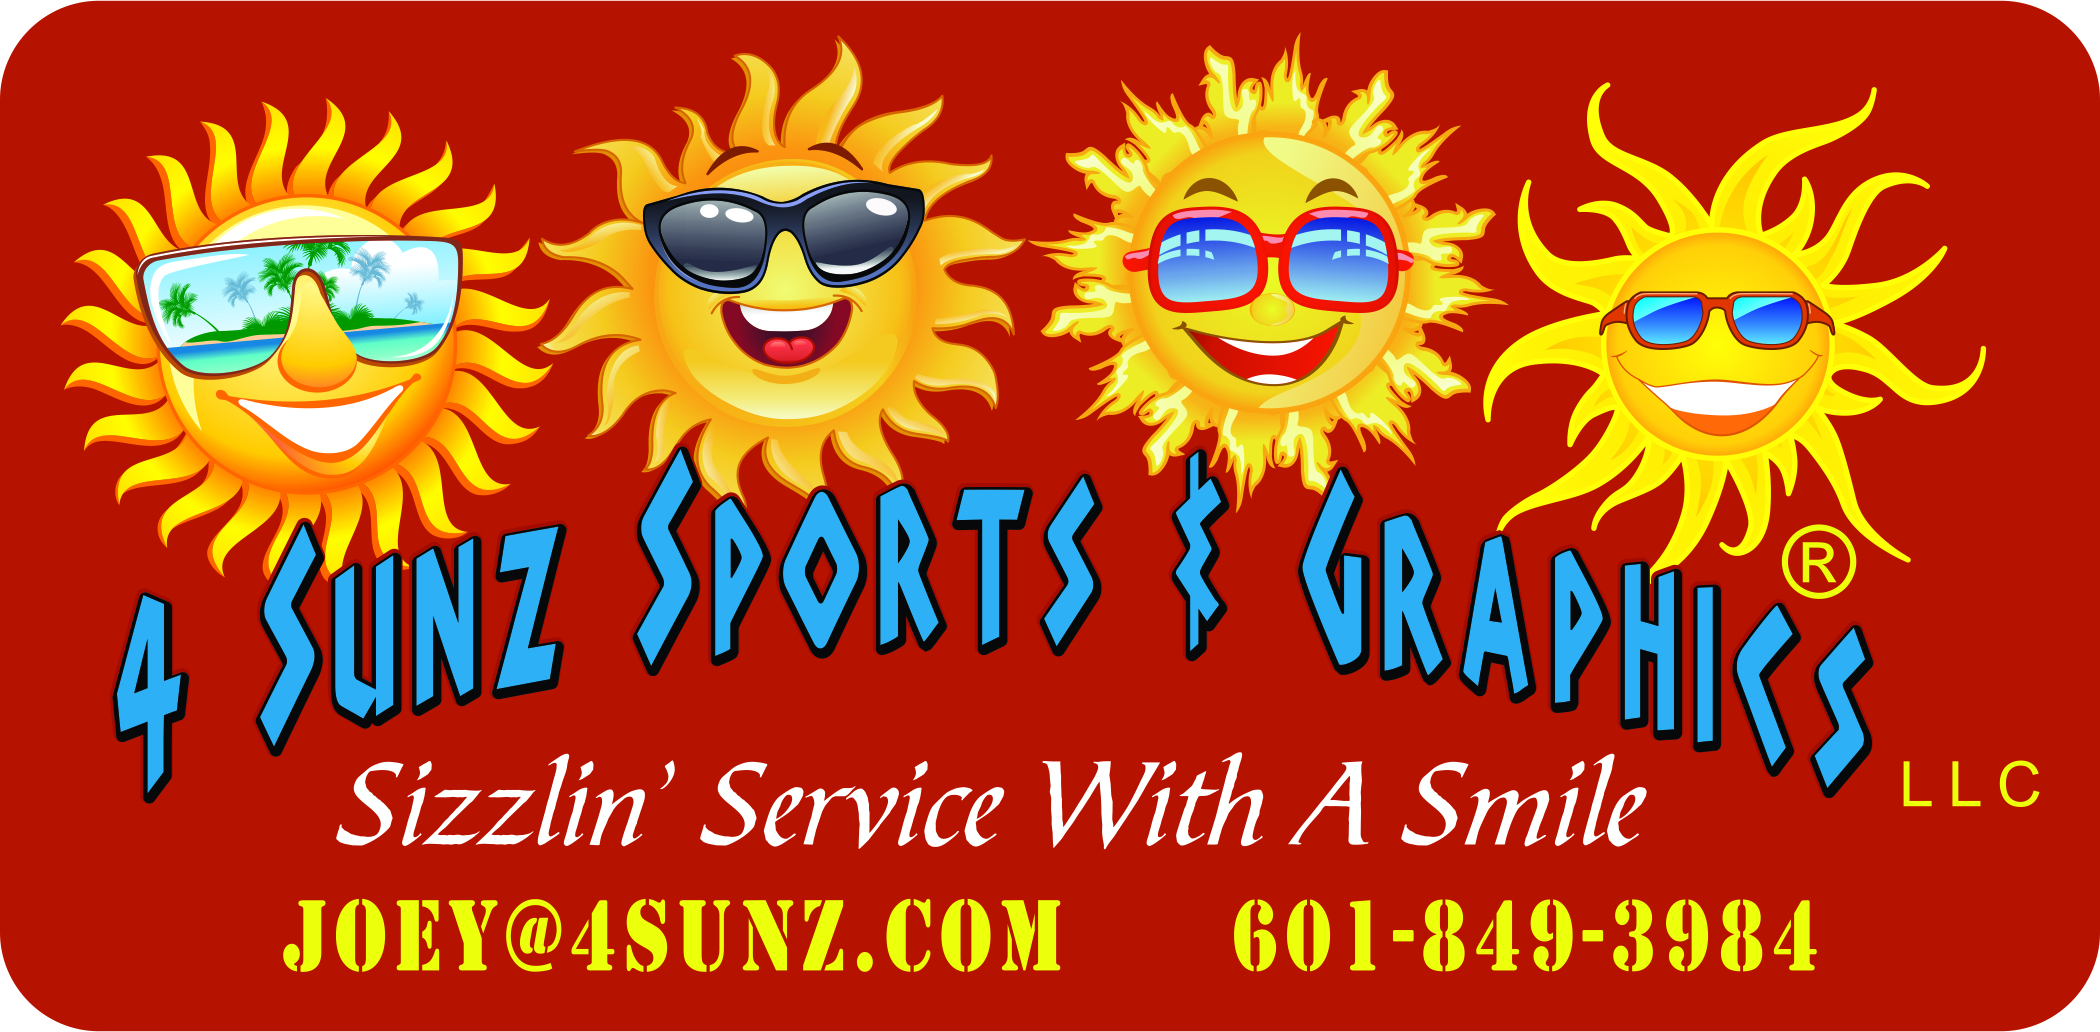 4 Sunz Sports & Graphics, LLC